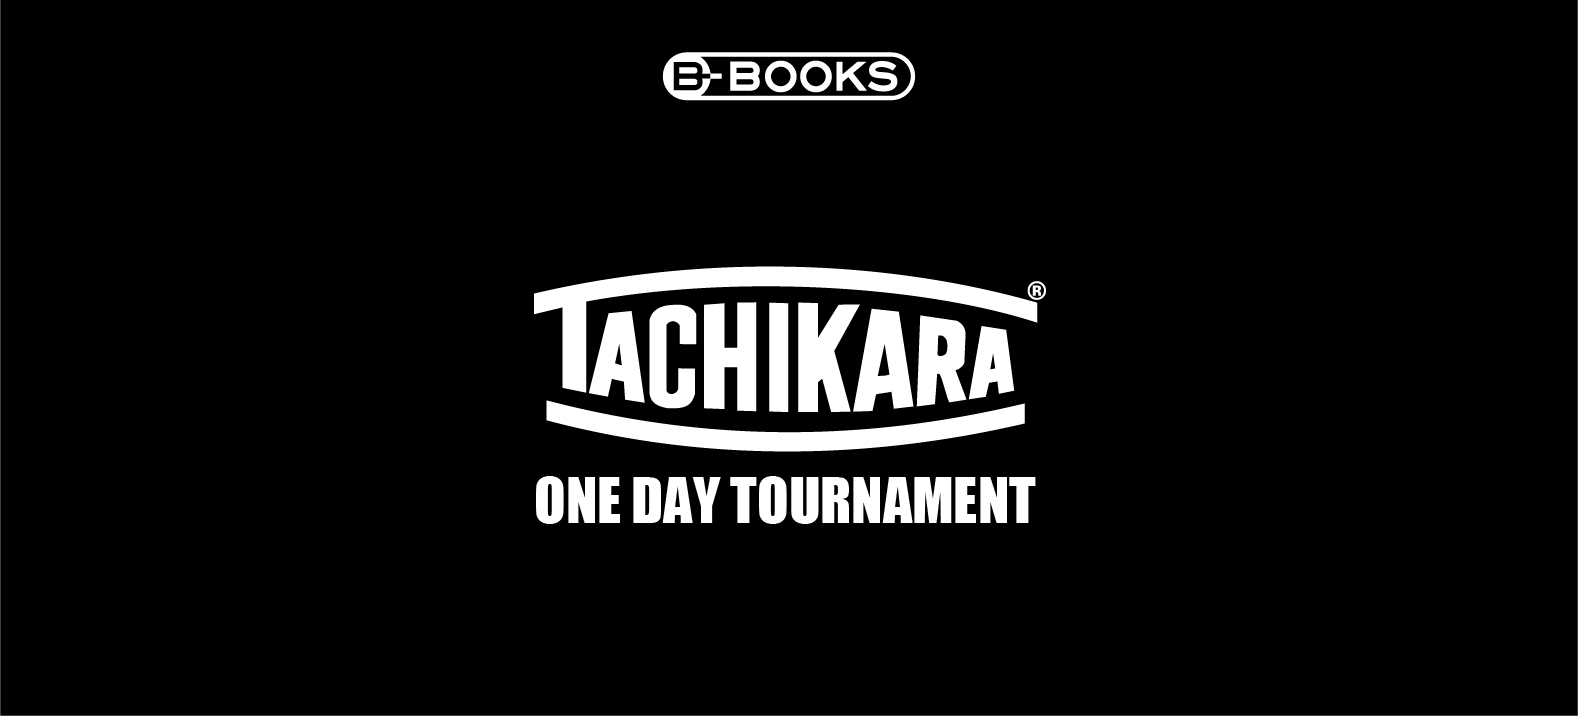 TACHIKARA 1DAY TOURNAMENT